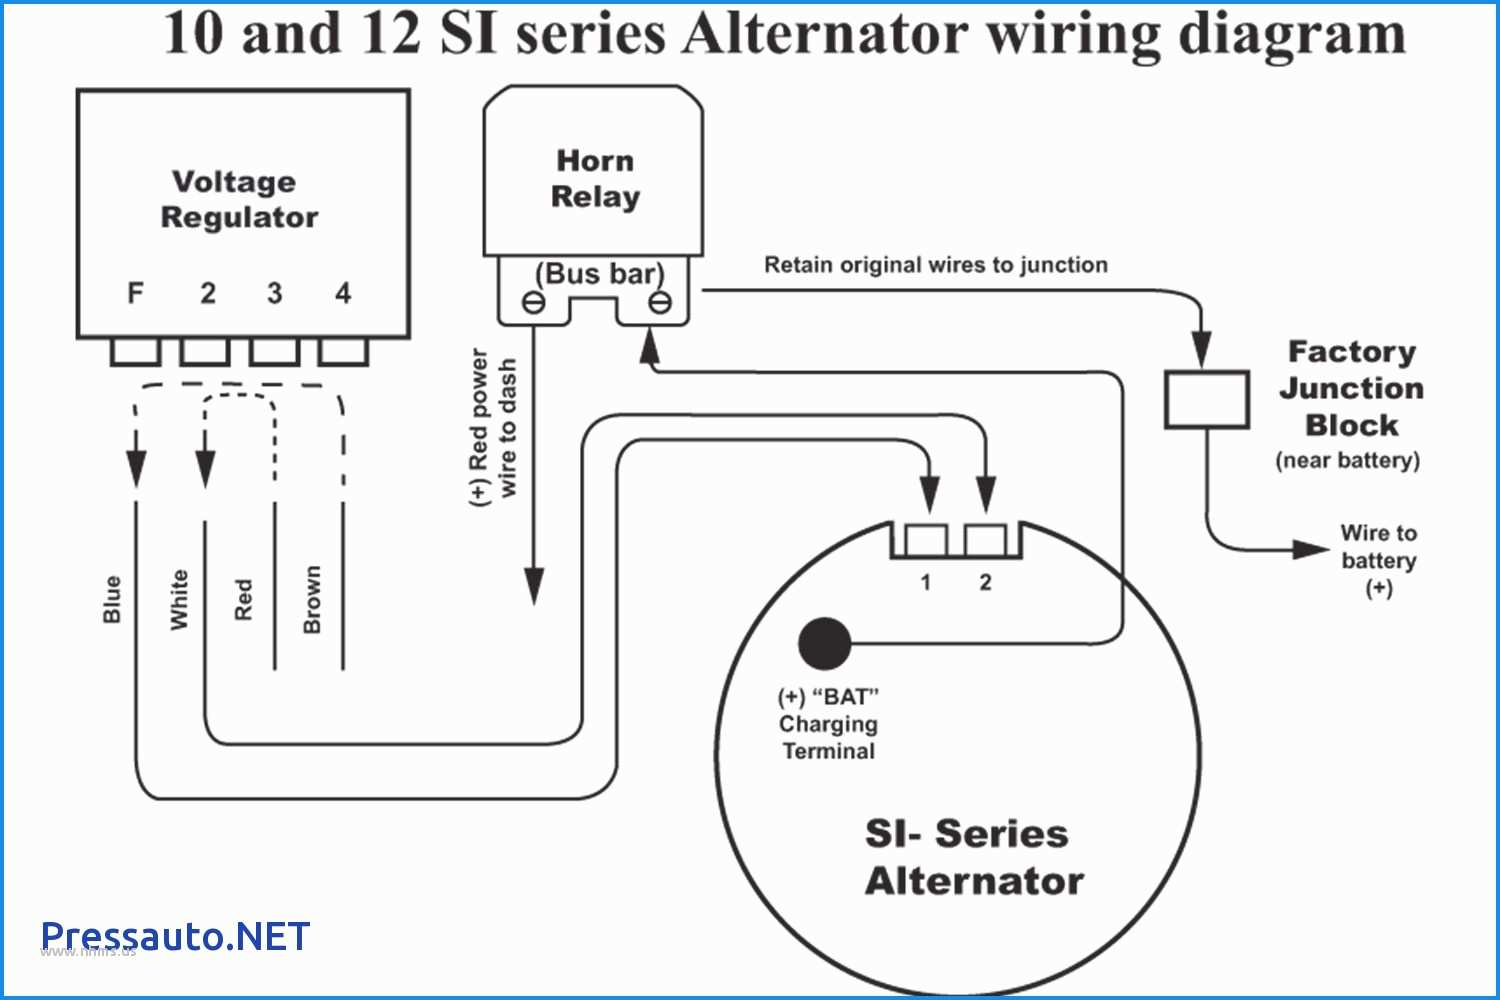 Gm 3 1 Wiring | Wiring Diagram - 4 Wire Alternator Wiring Diagram